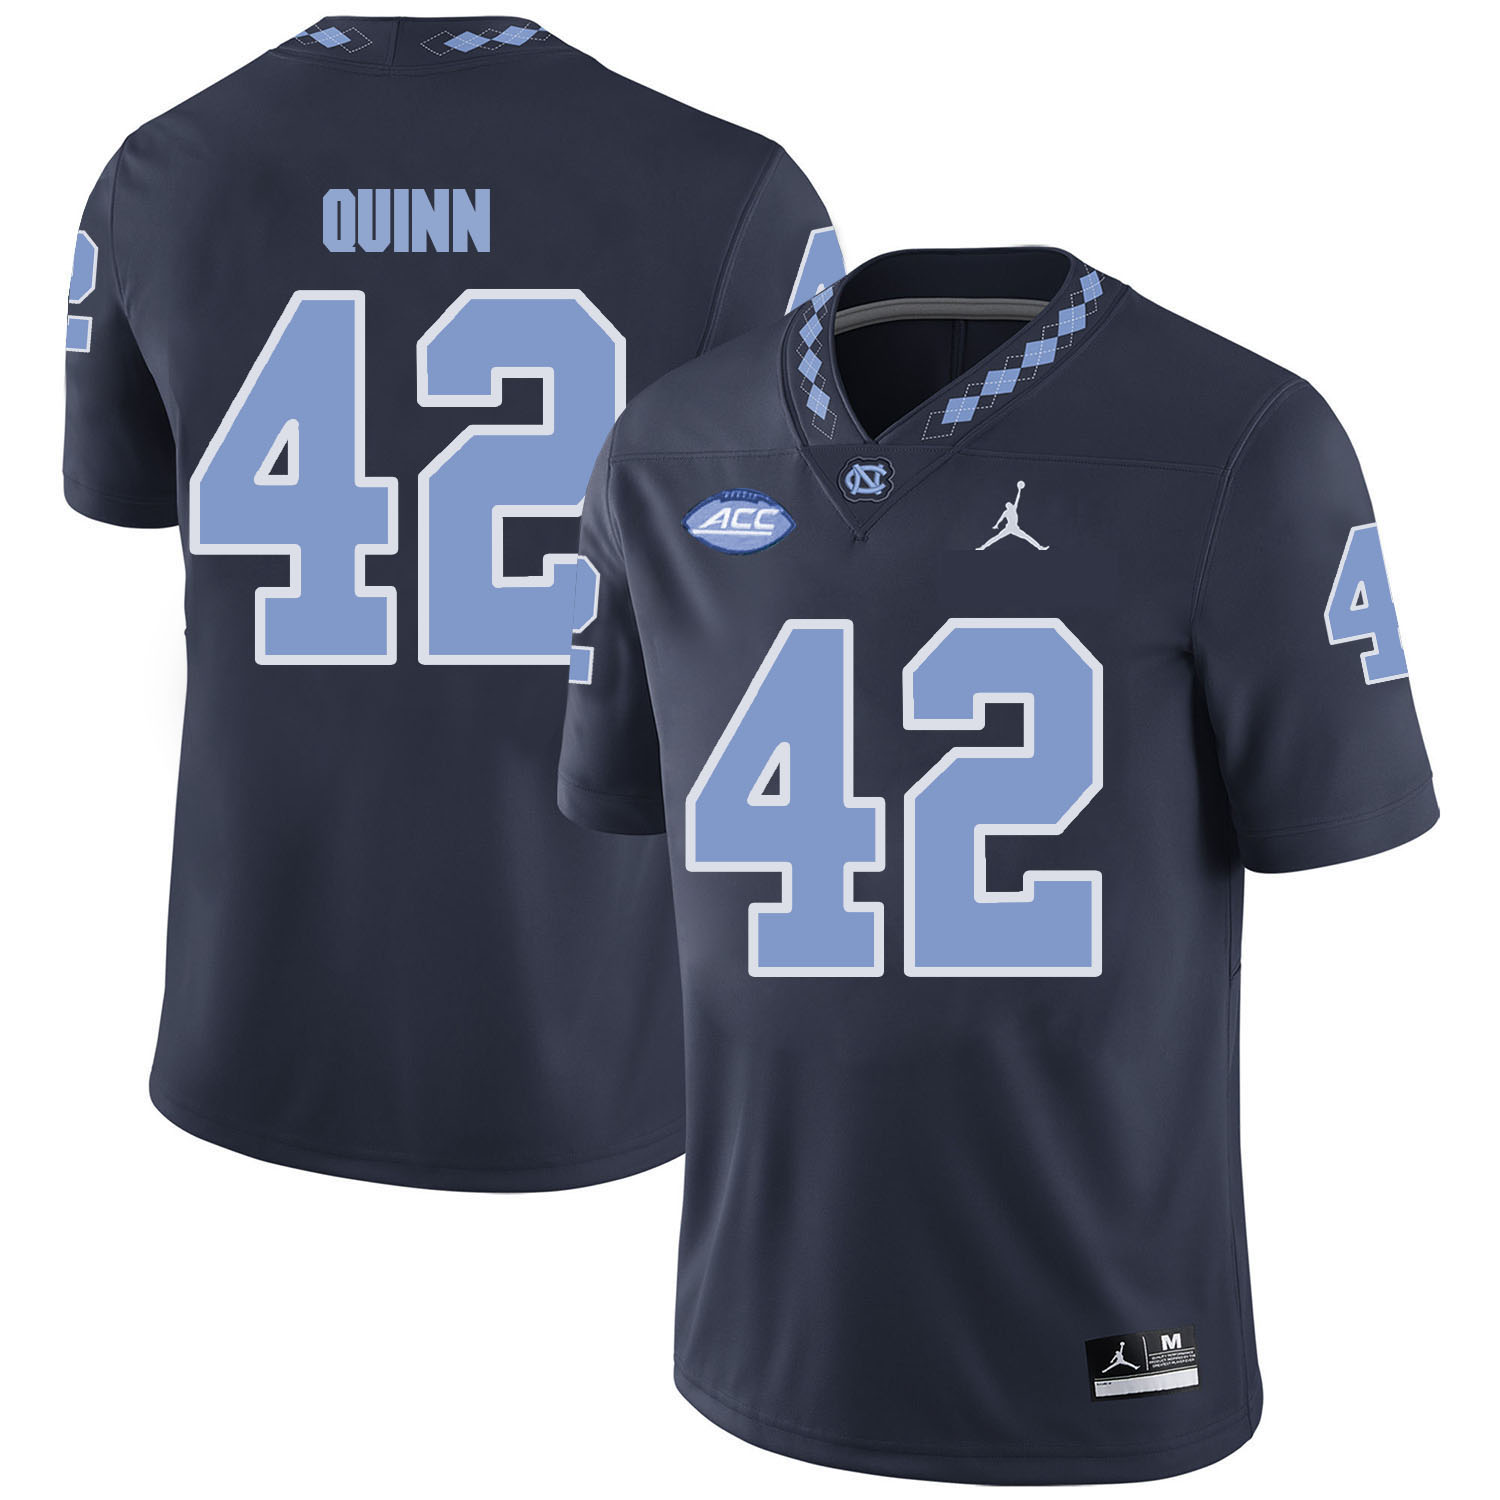 North Carolina Tar Heels 42 Robert Quinn Black College Football Jersey